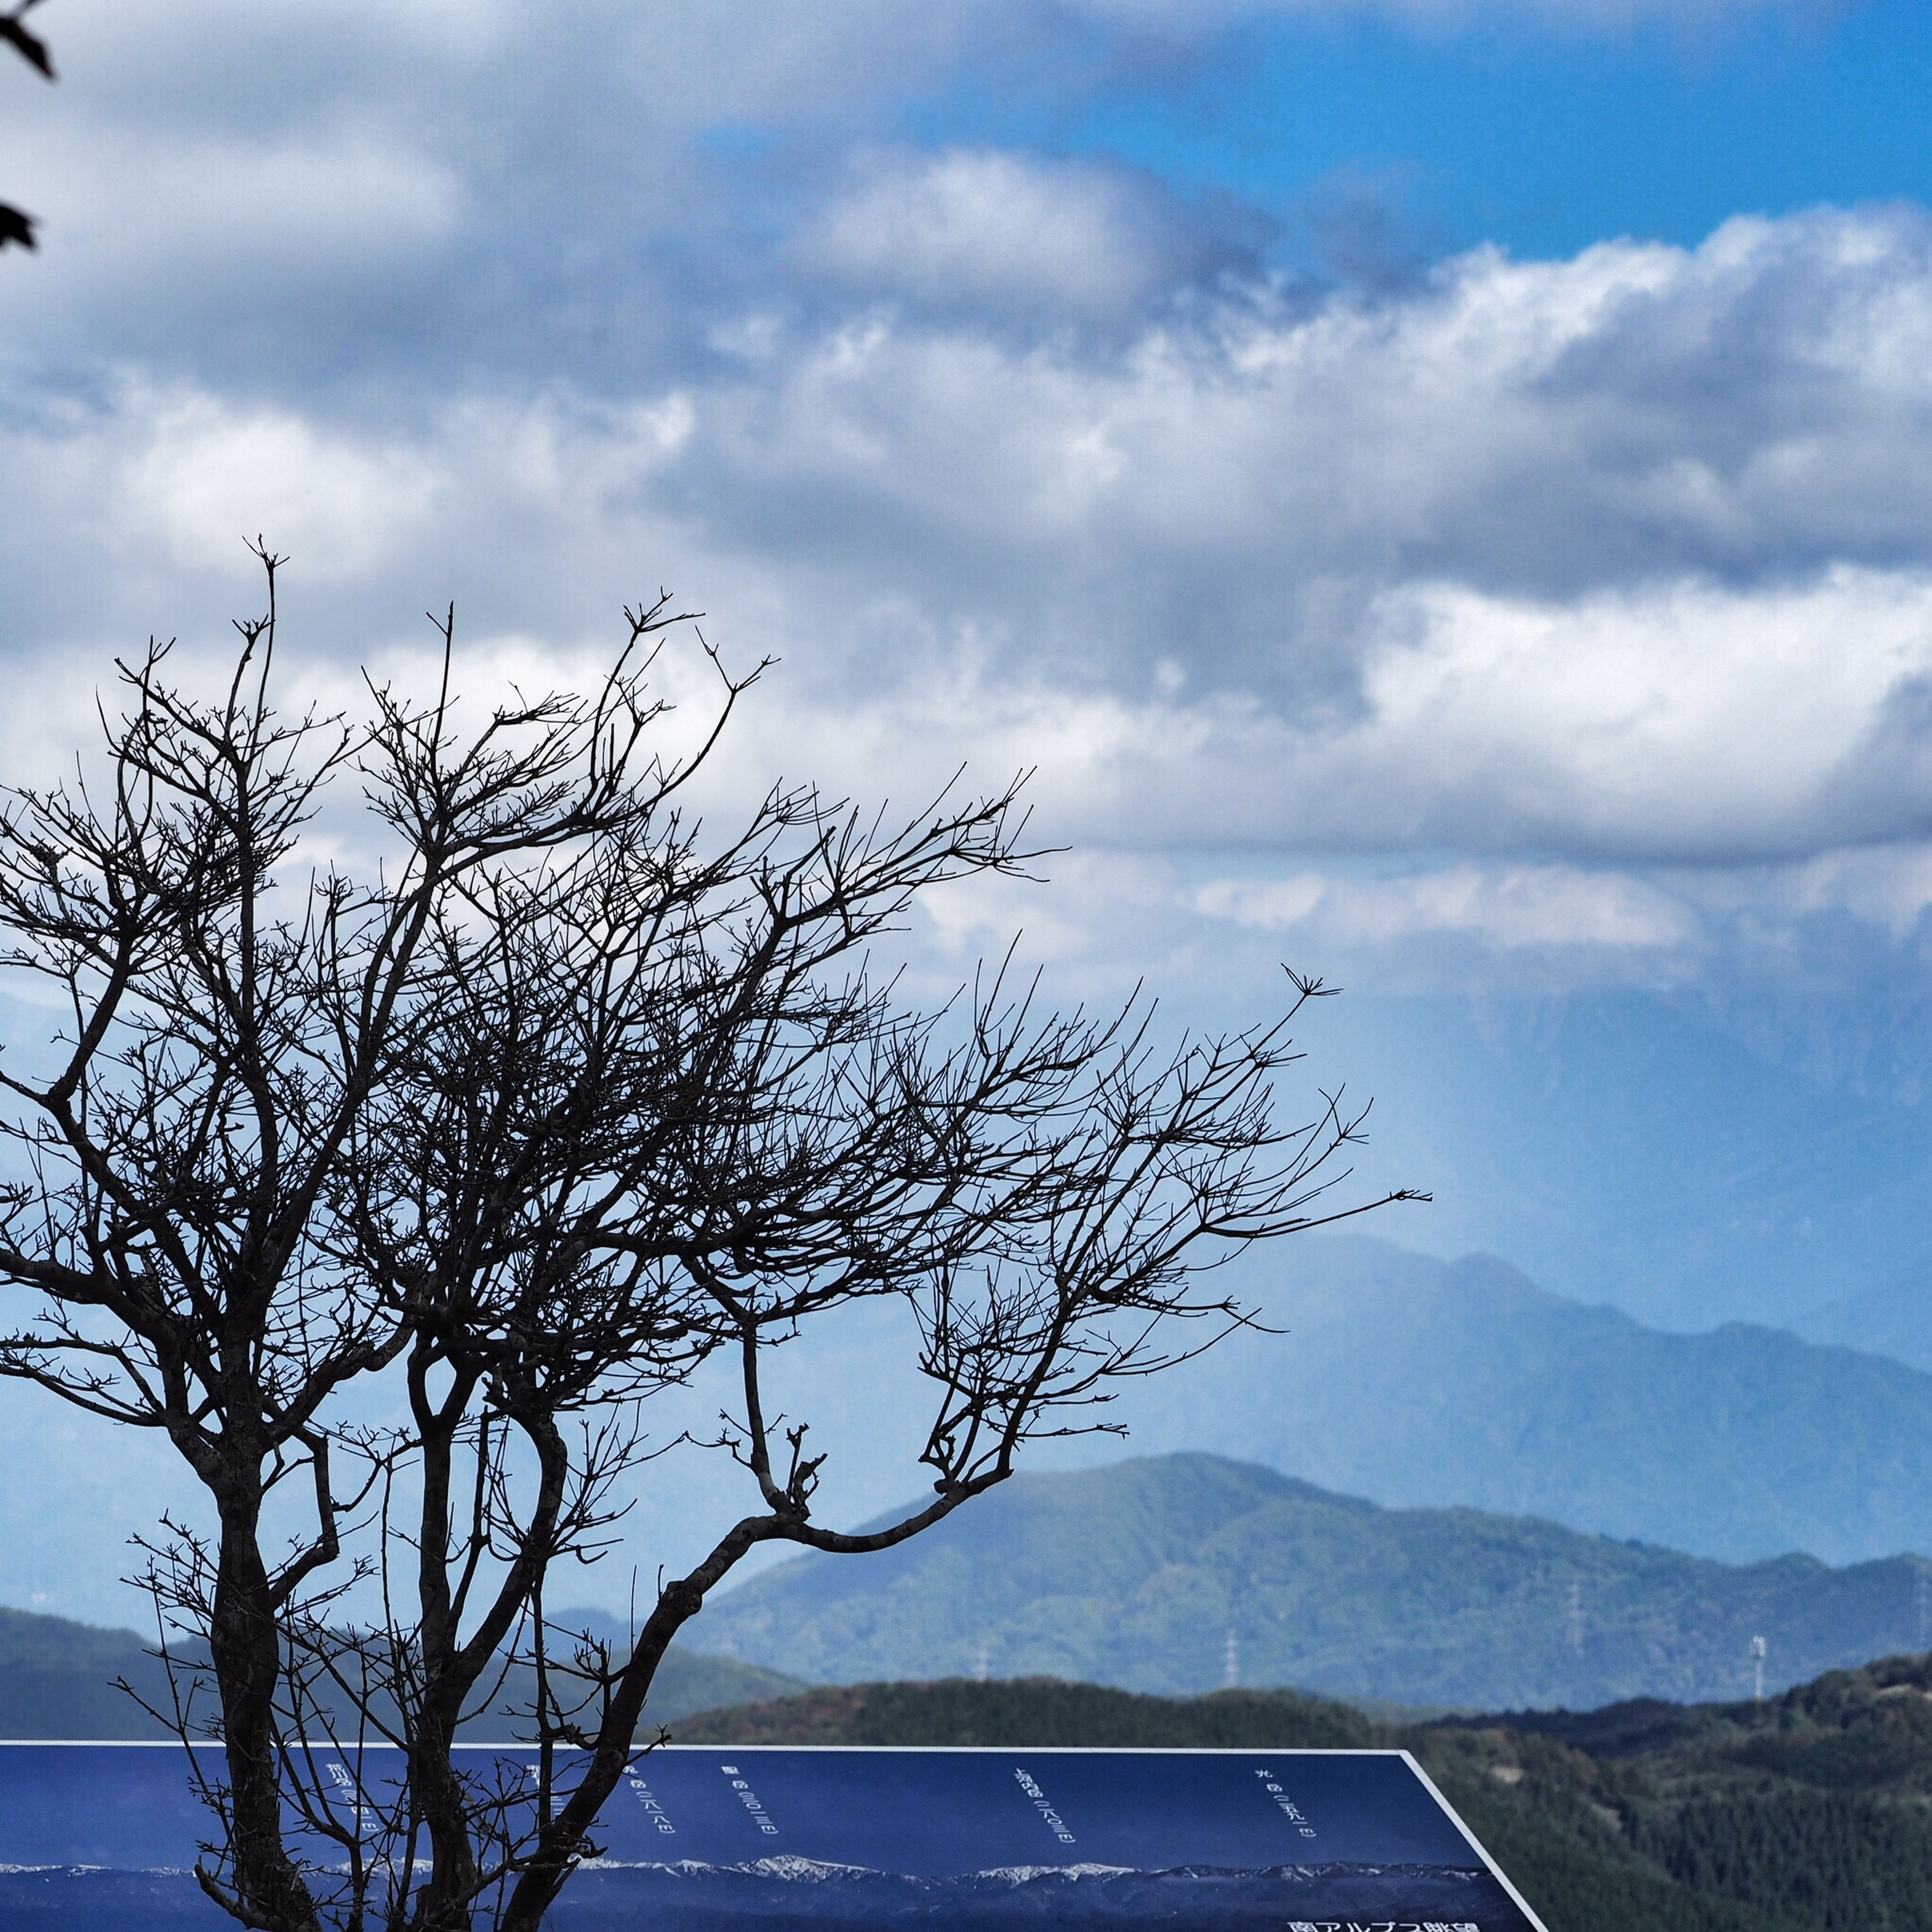 sky, bare tree, mountain, tranquility, tranquil scene, cloud - sky, scenics, mountain range, beauty in nature, landscape, nature, branch, tree, cloudy, cloud, non-urban scene, outdoors, no people, day, weather